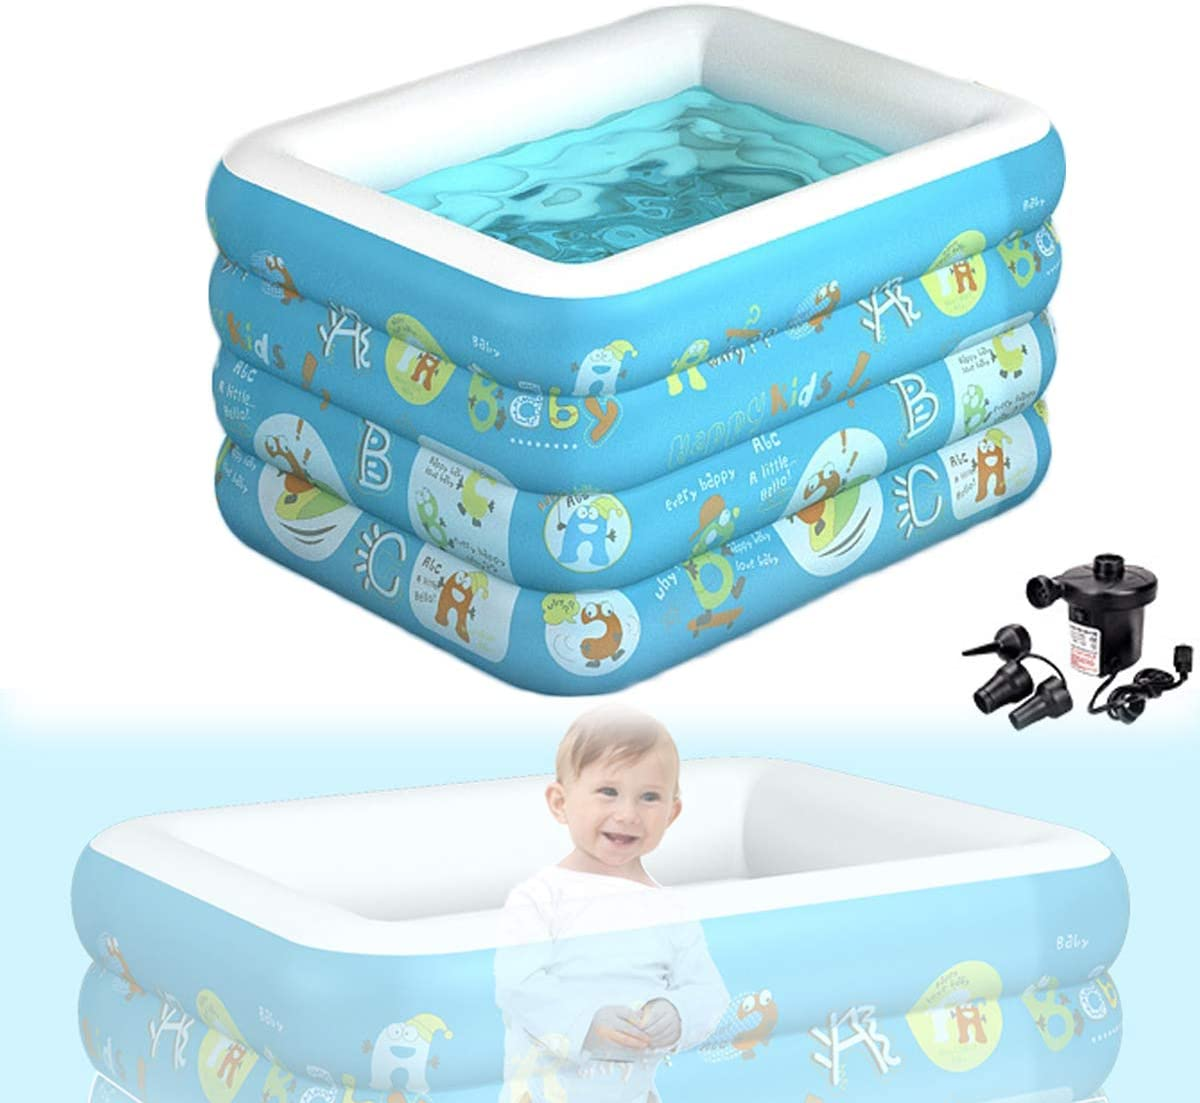 HIMNA PETTR Infant Inflatable Pool Swimming Virginia Beach Mall Max 46% OFF Household Thickened